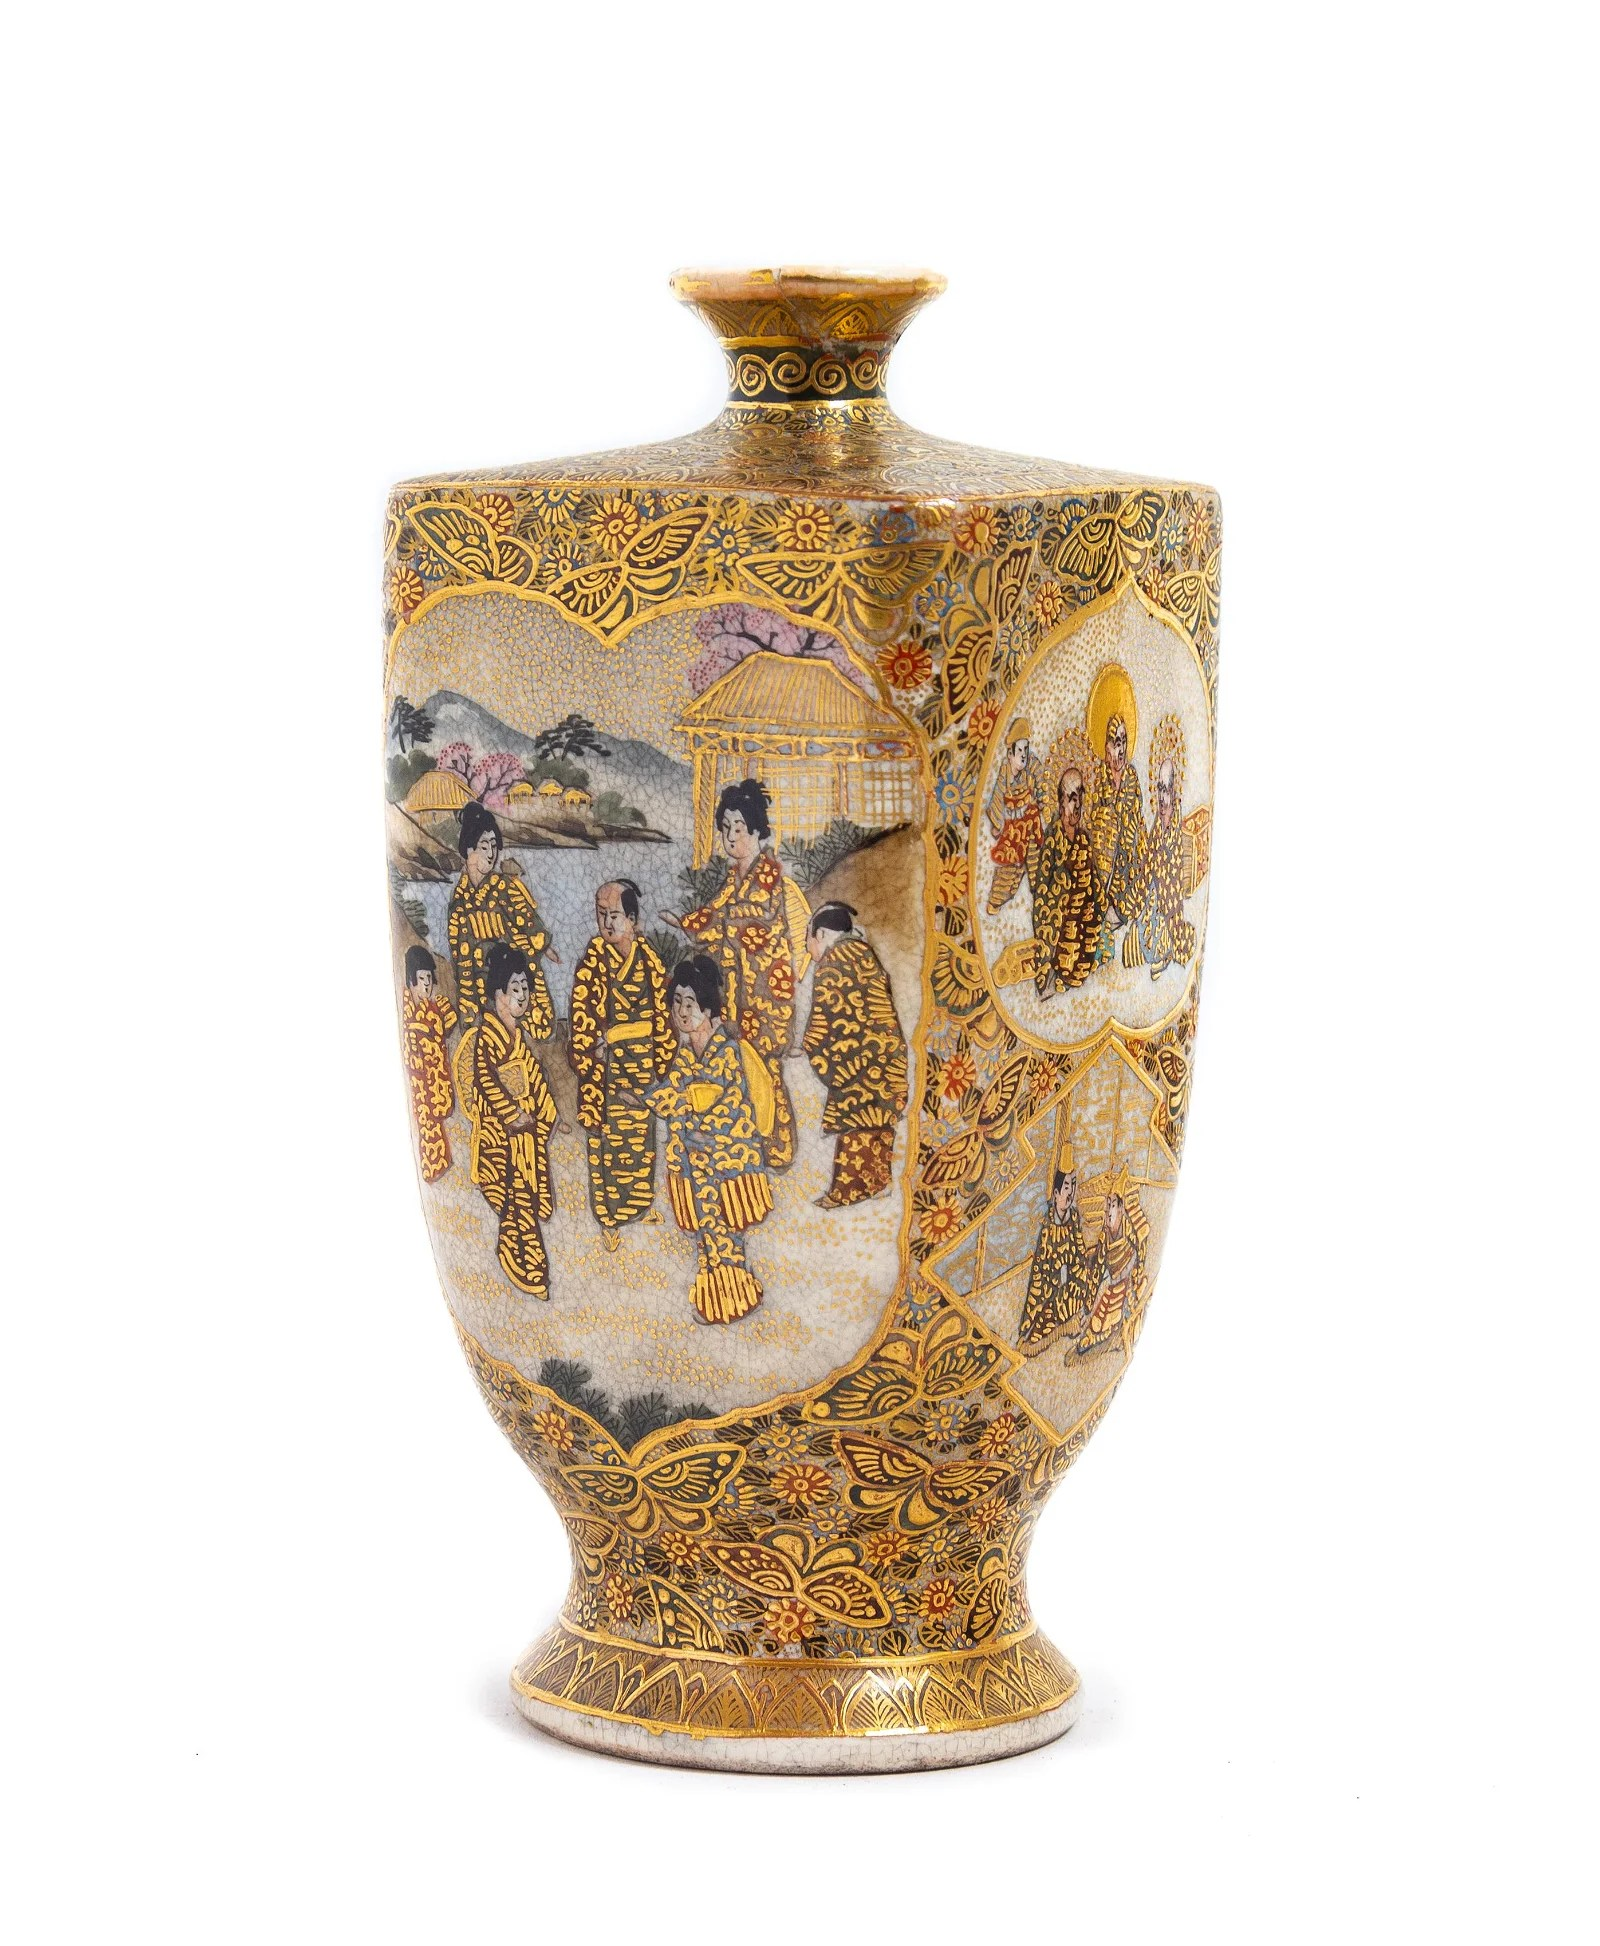 A Japanese Satsuma Vase Height 5 1/4 in., 13 cm.